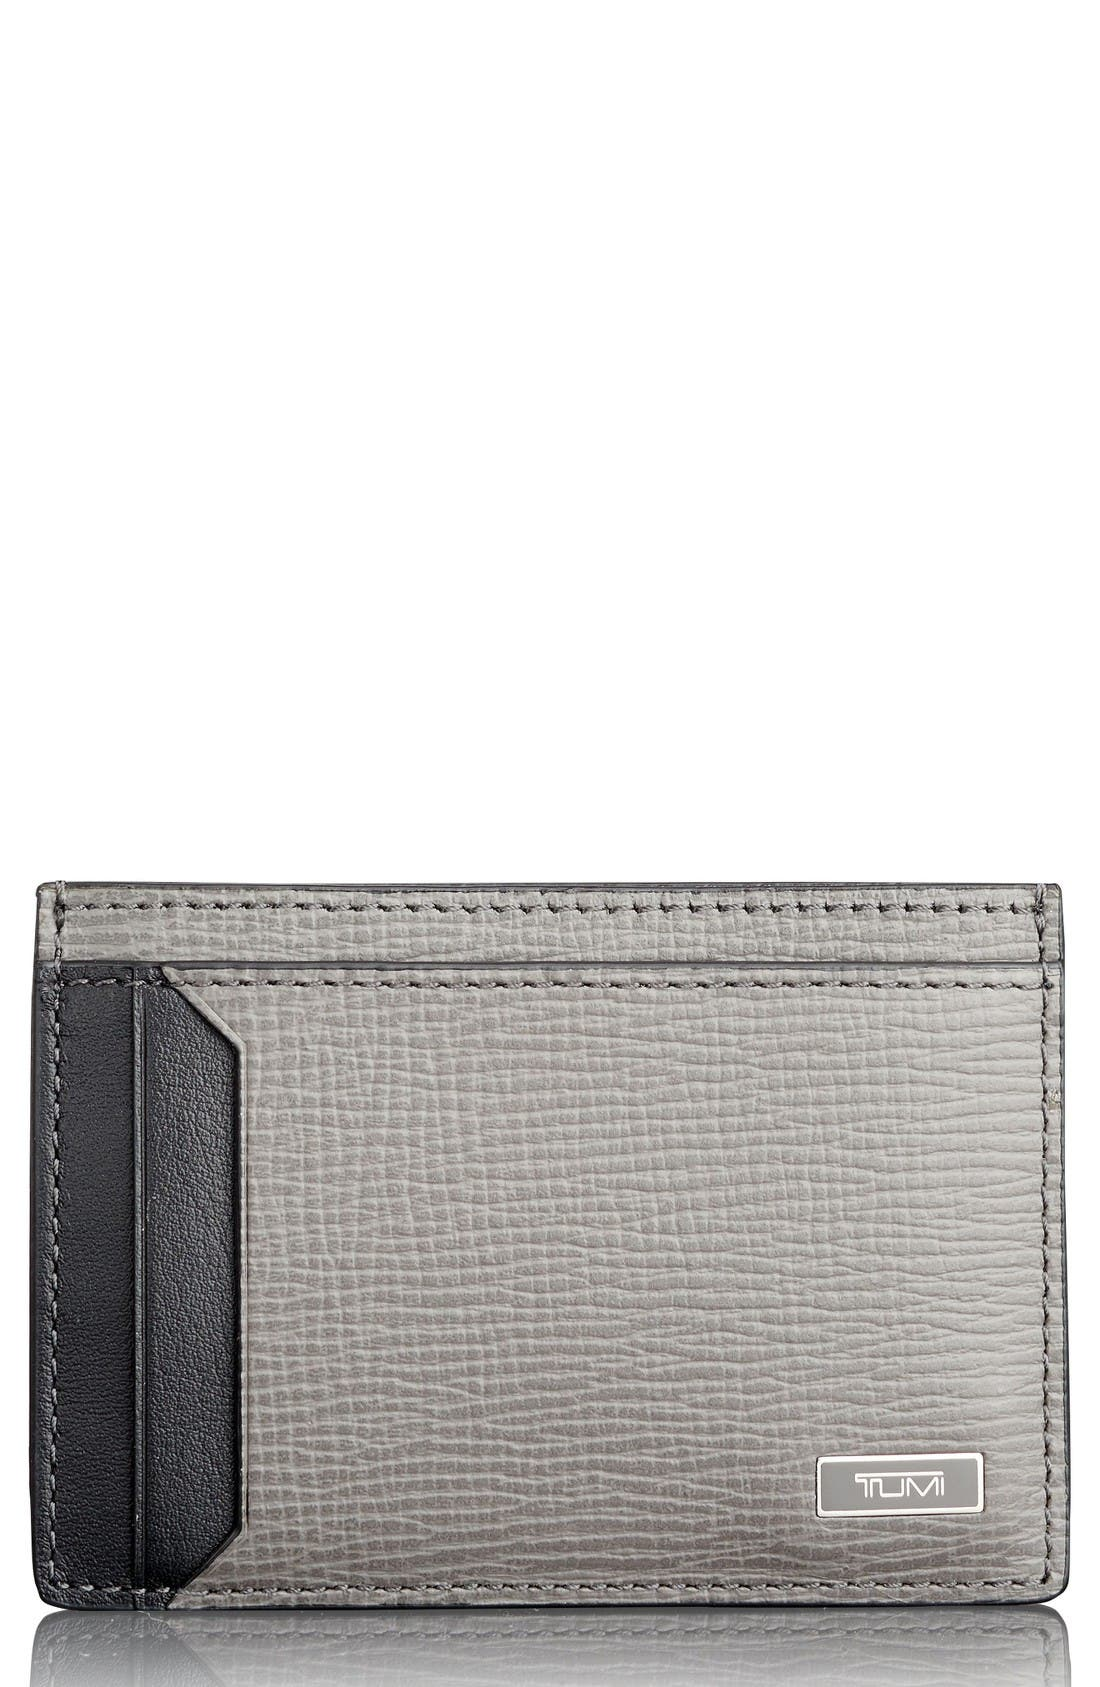 Tumi Monaco Leather RFID Money Clip Card Case